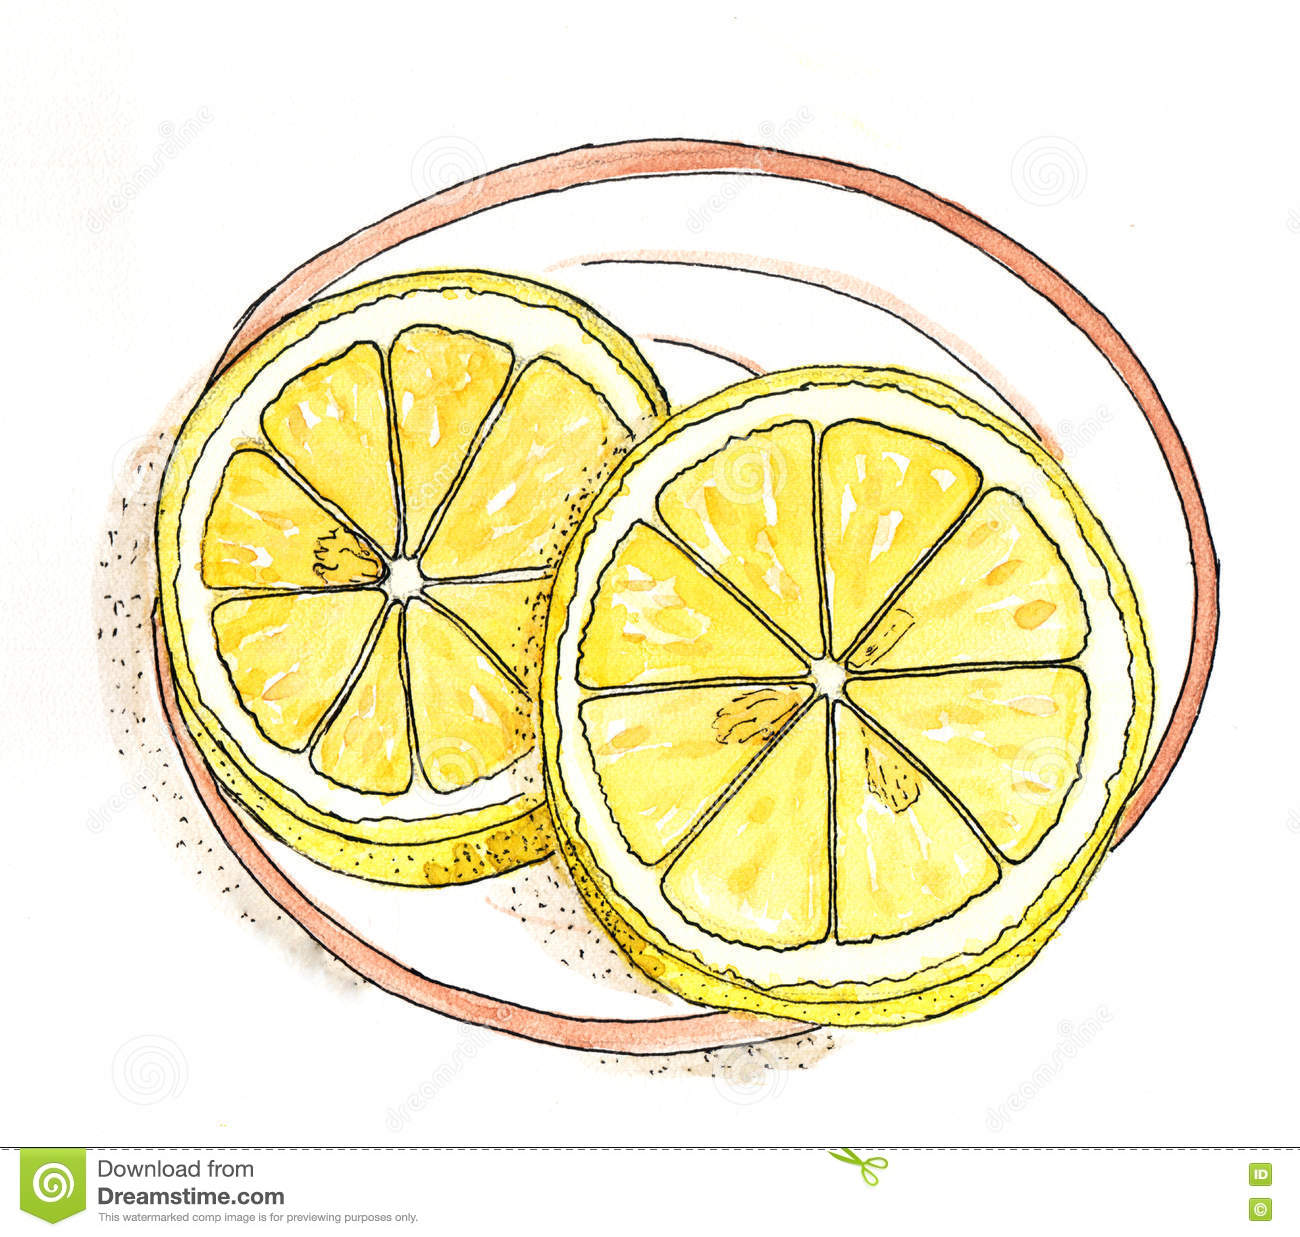 Watercolor Drawing - Lemon Slices On A Plate Stock ...